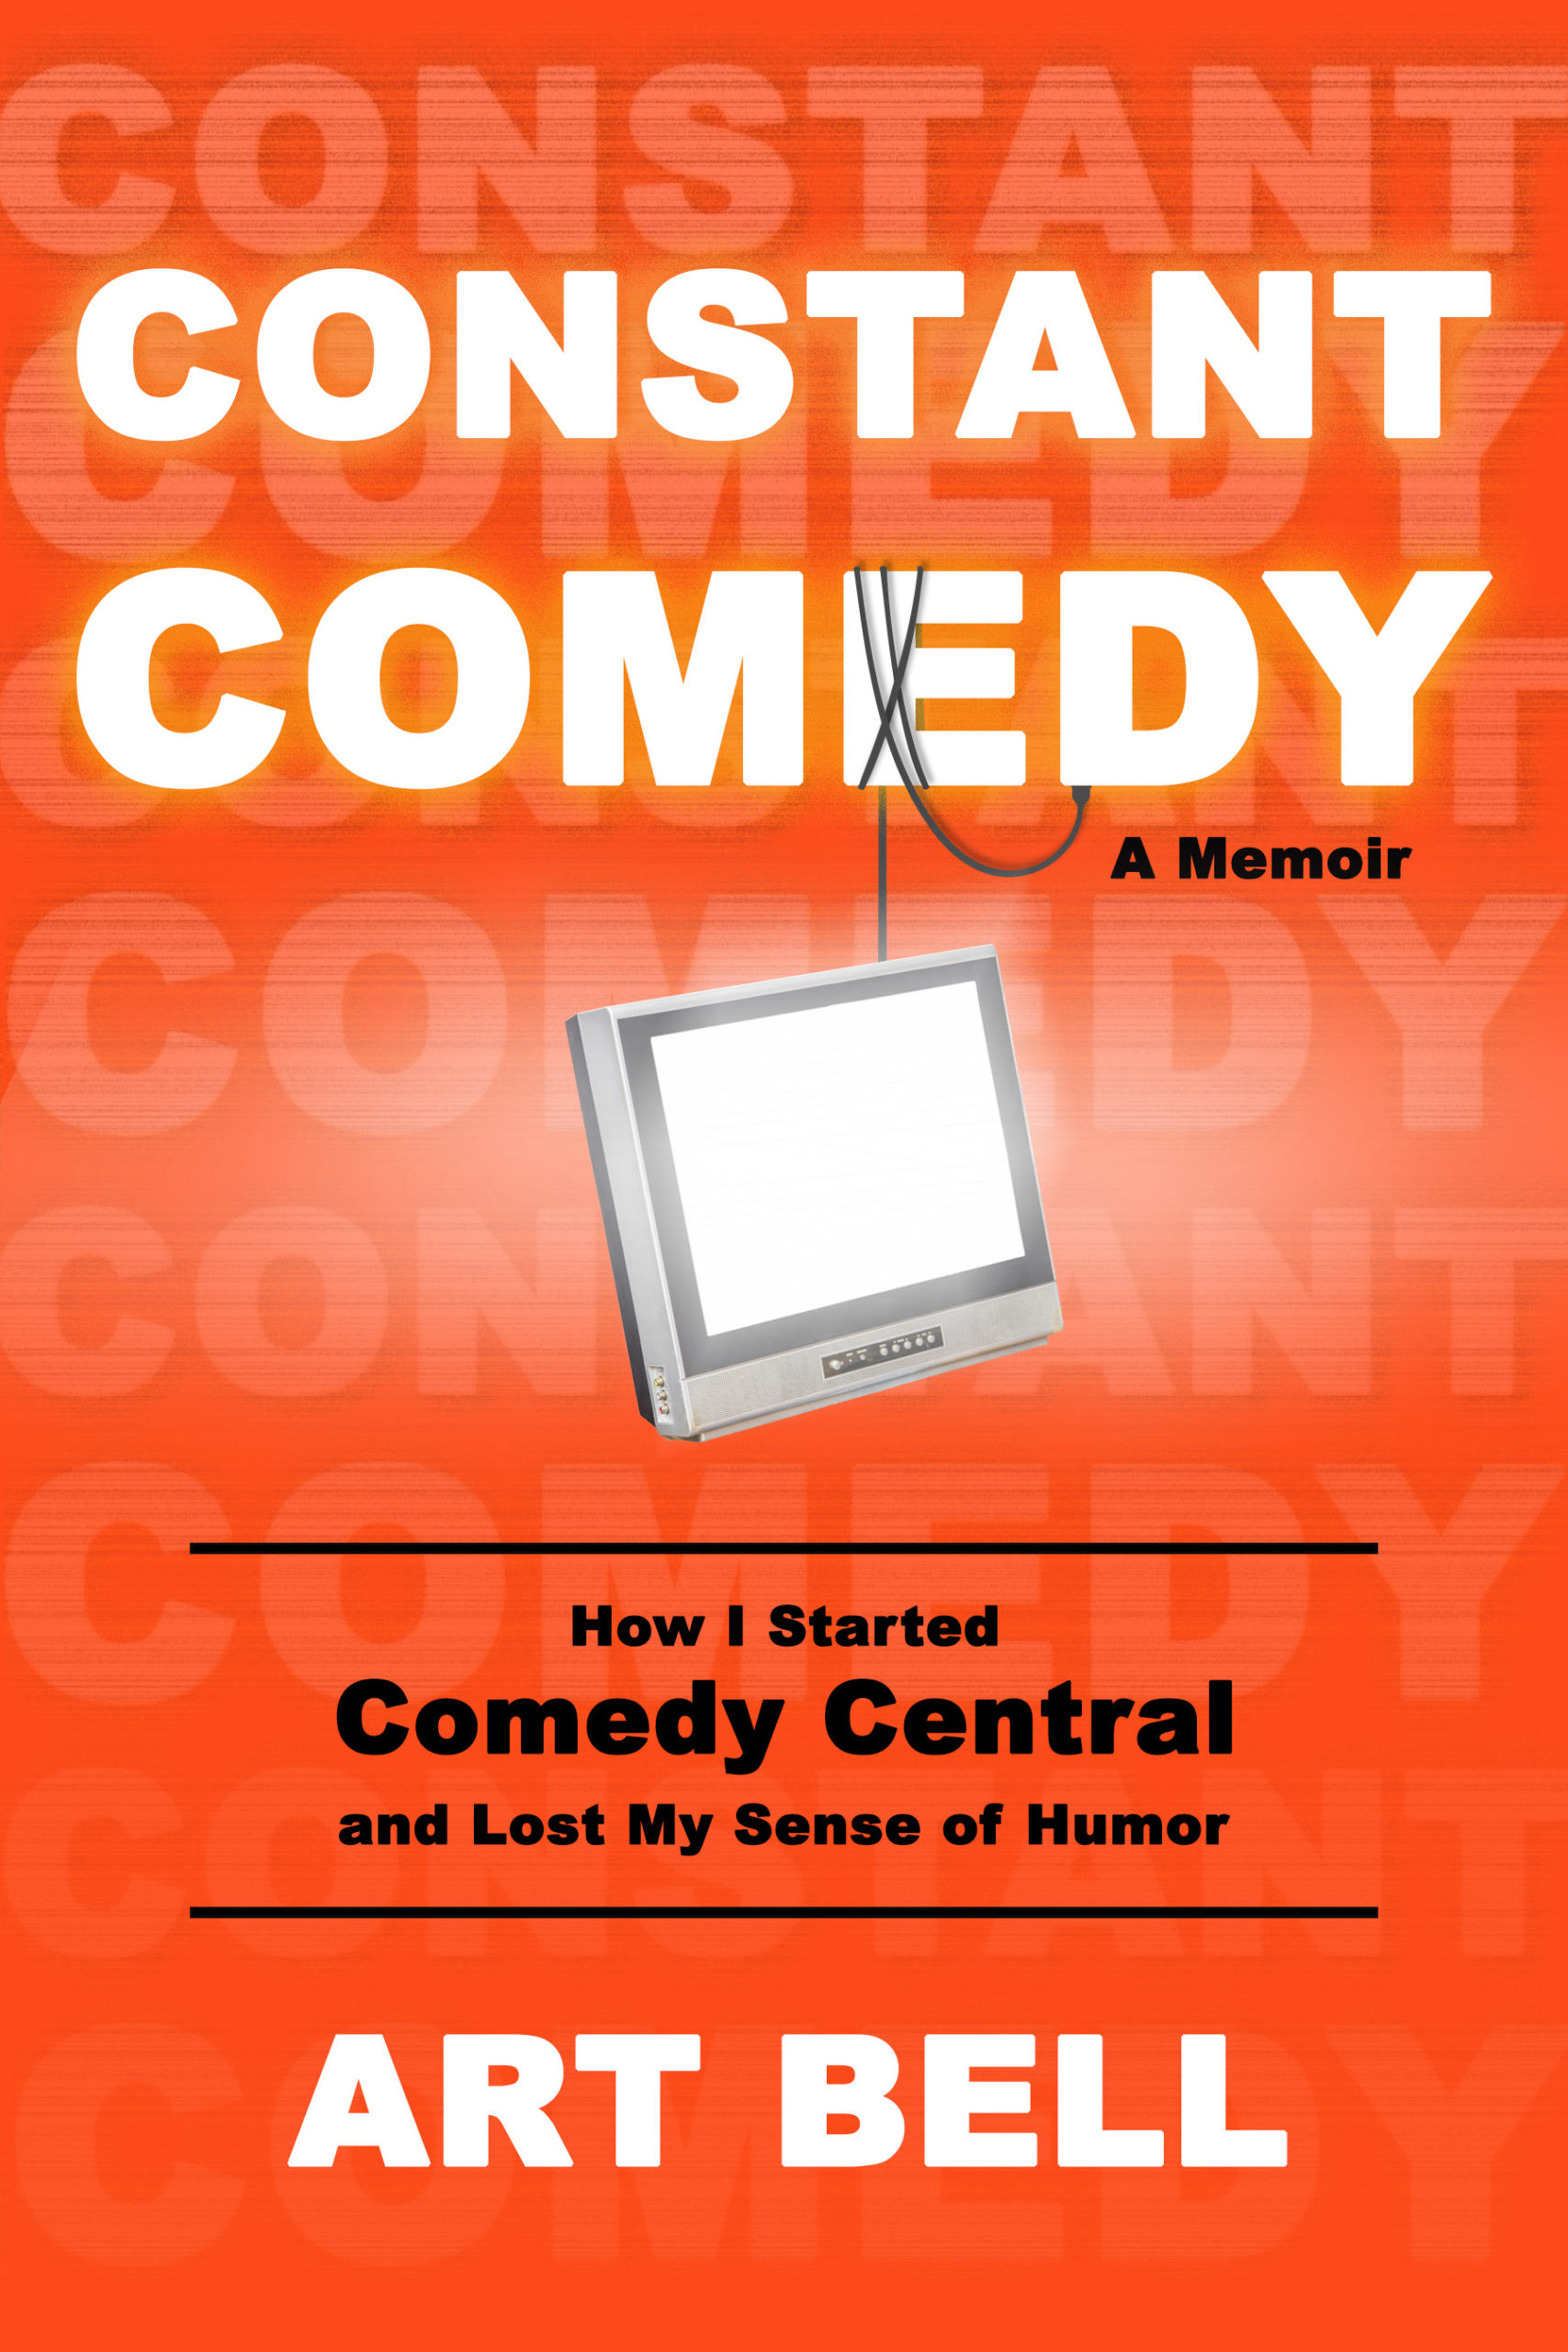 Constant Comedy by Art Bell